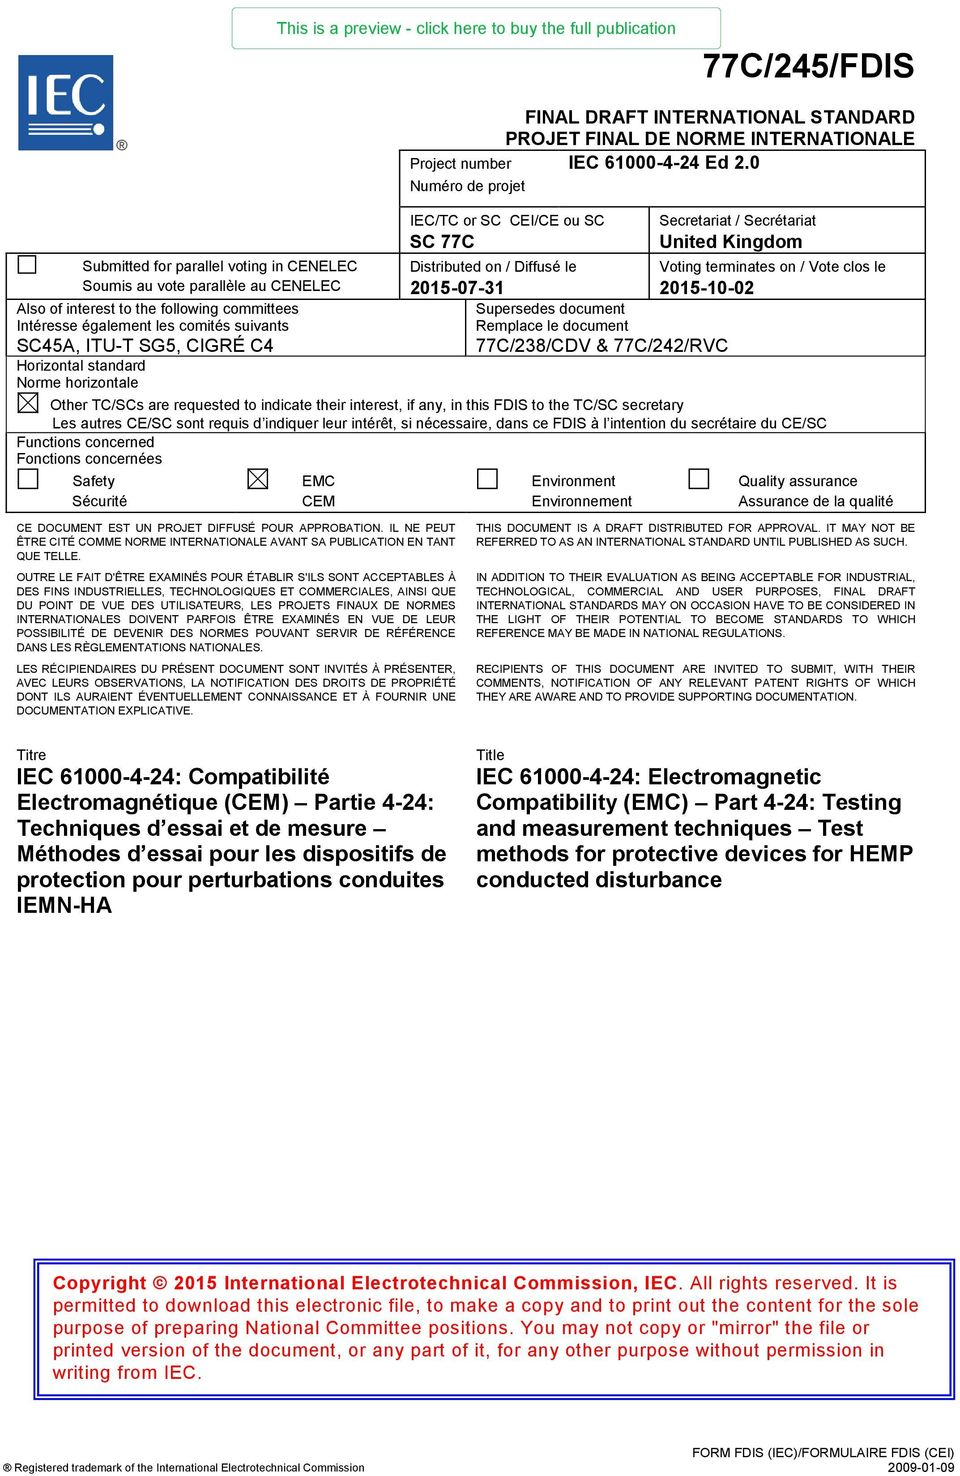 CIGRÉ C4 Horizontal standard Norme horizontale IEC/TC or SC CEI/CE ou SC SC 77C Distributed on / Diffusé le 2015-07-31 Supersedes document Remplace le document 77C/238/CDV & 77C/242/RVC Secretariat /